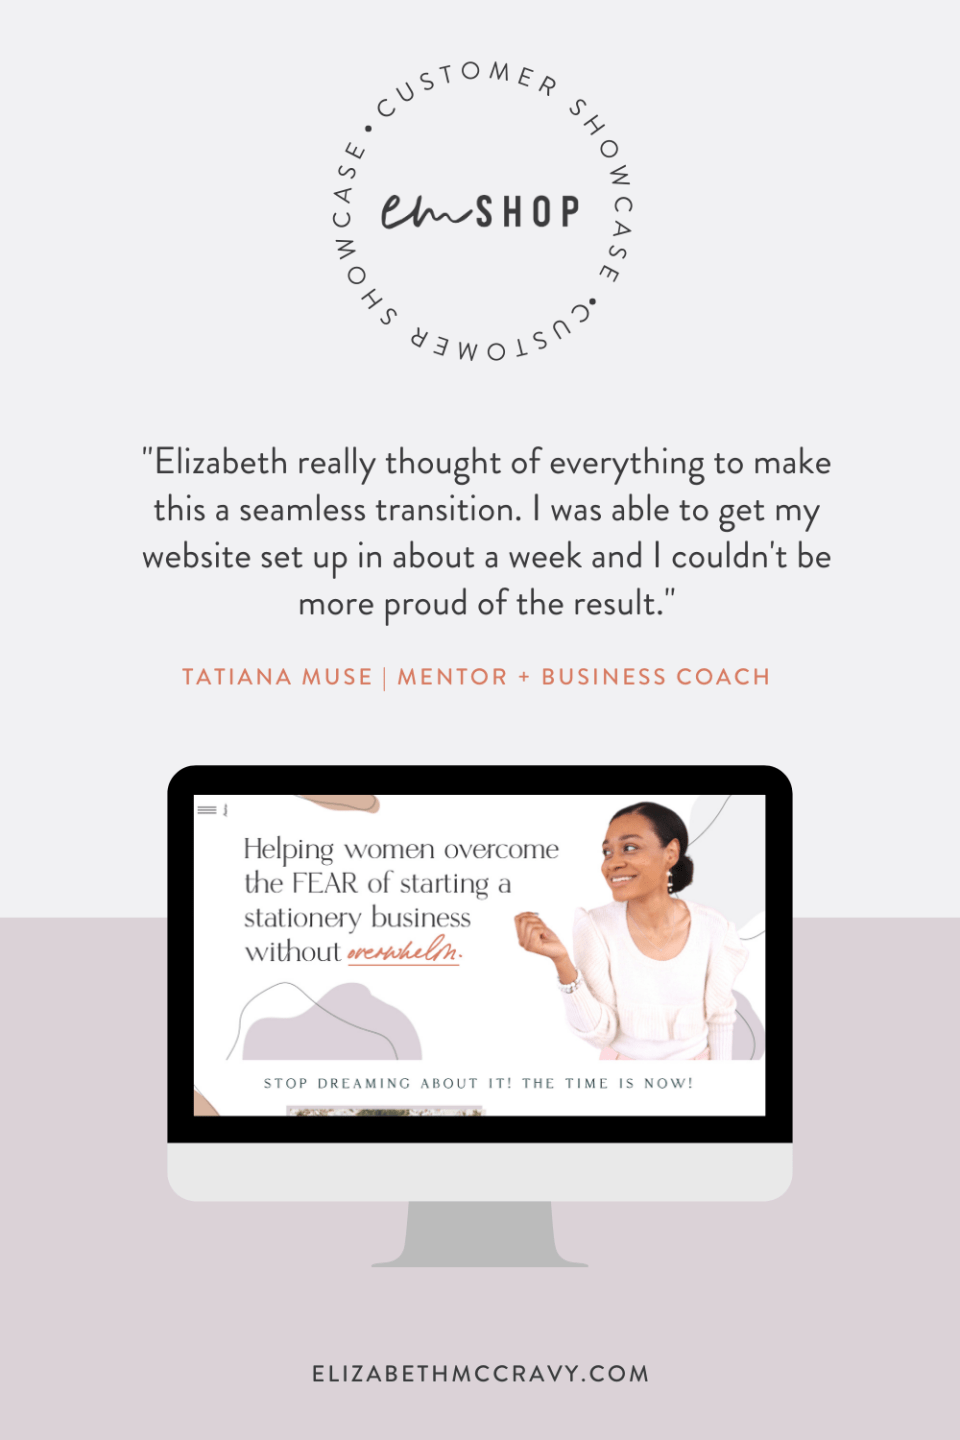 """""""Elizabeth really thought of everything to make this a seamless transition! I was able to get my website up in about a week and couldn't be more proud of the result."""" -Tatiana Muse"""